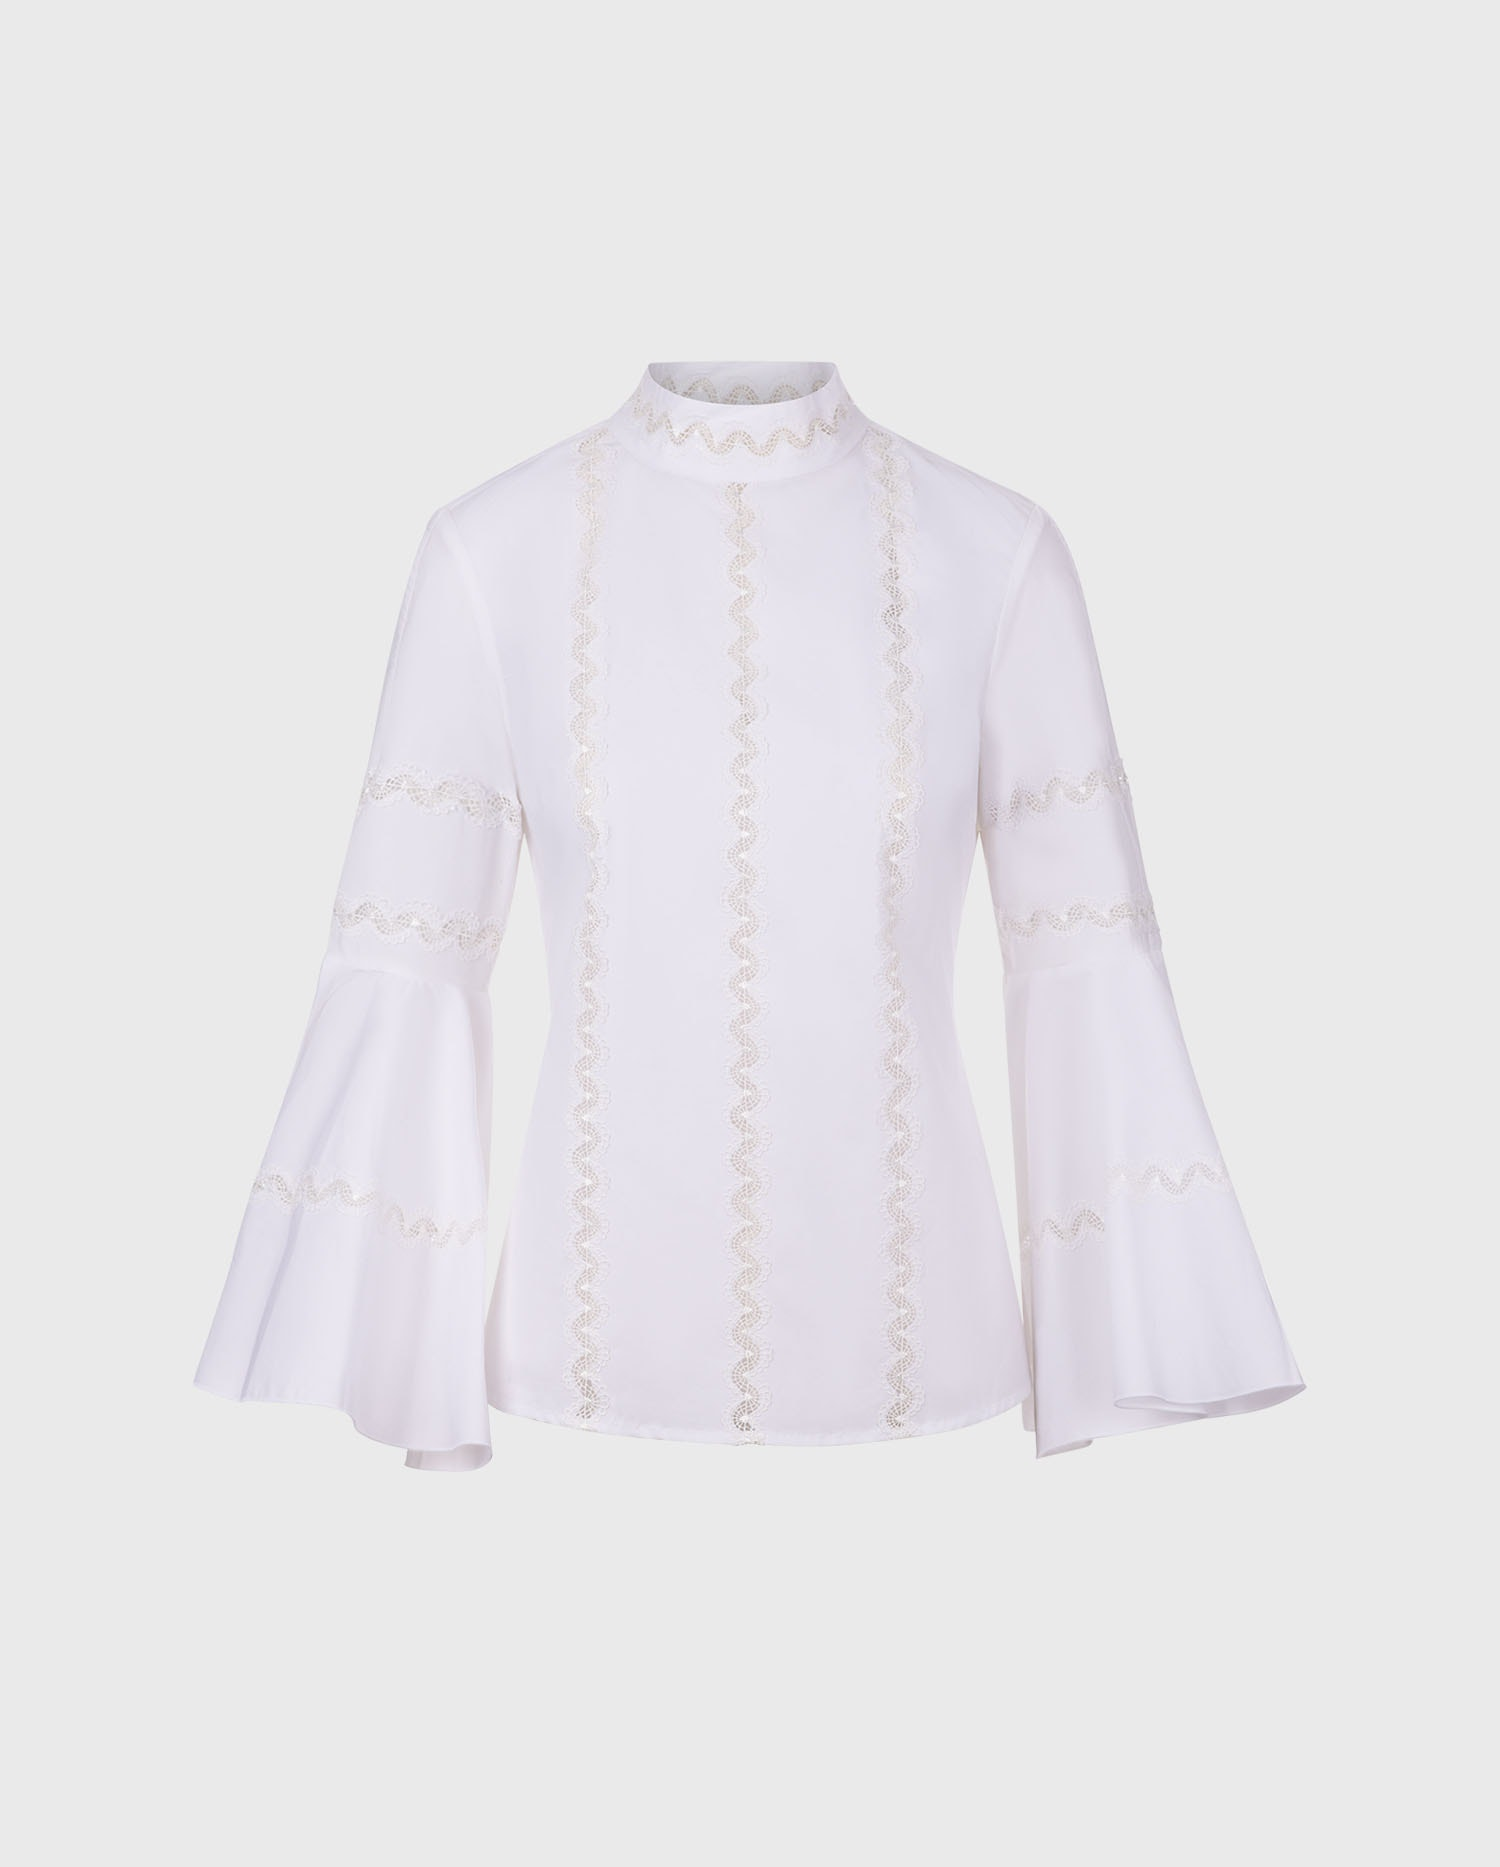 The the LEONTINE whire bell sleeve white shirt is the perfect style to add to your Parisian chic wardrobe